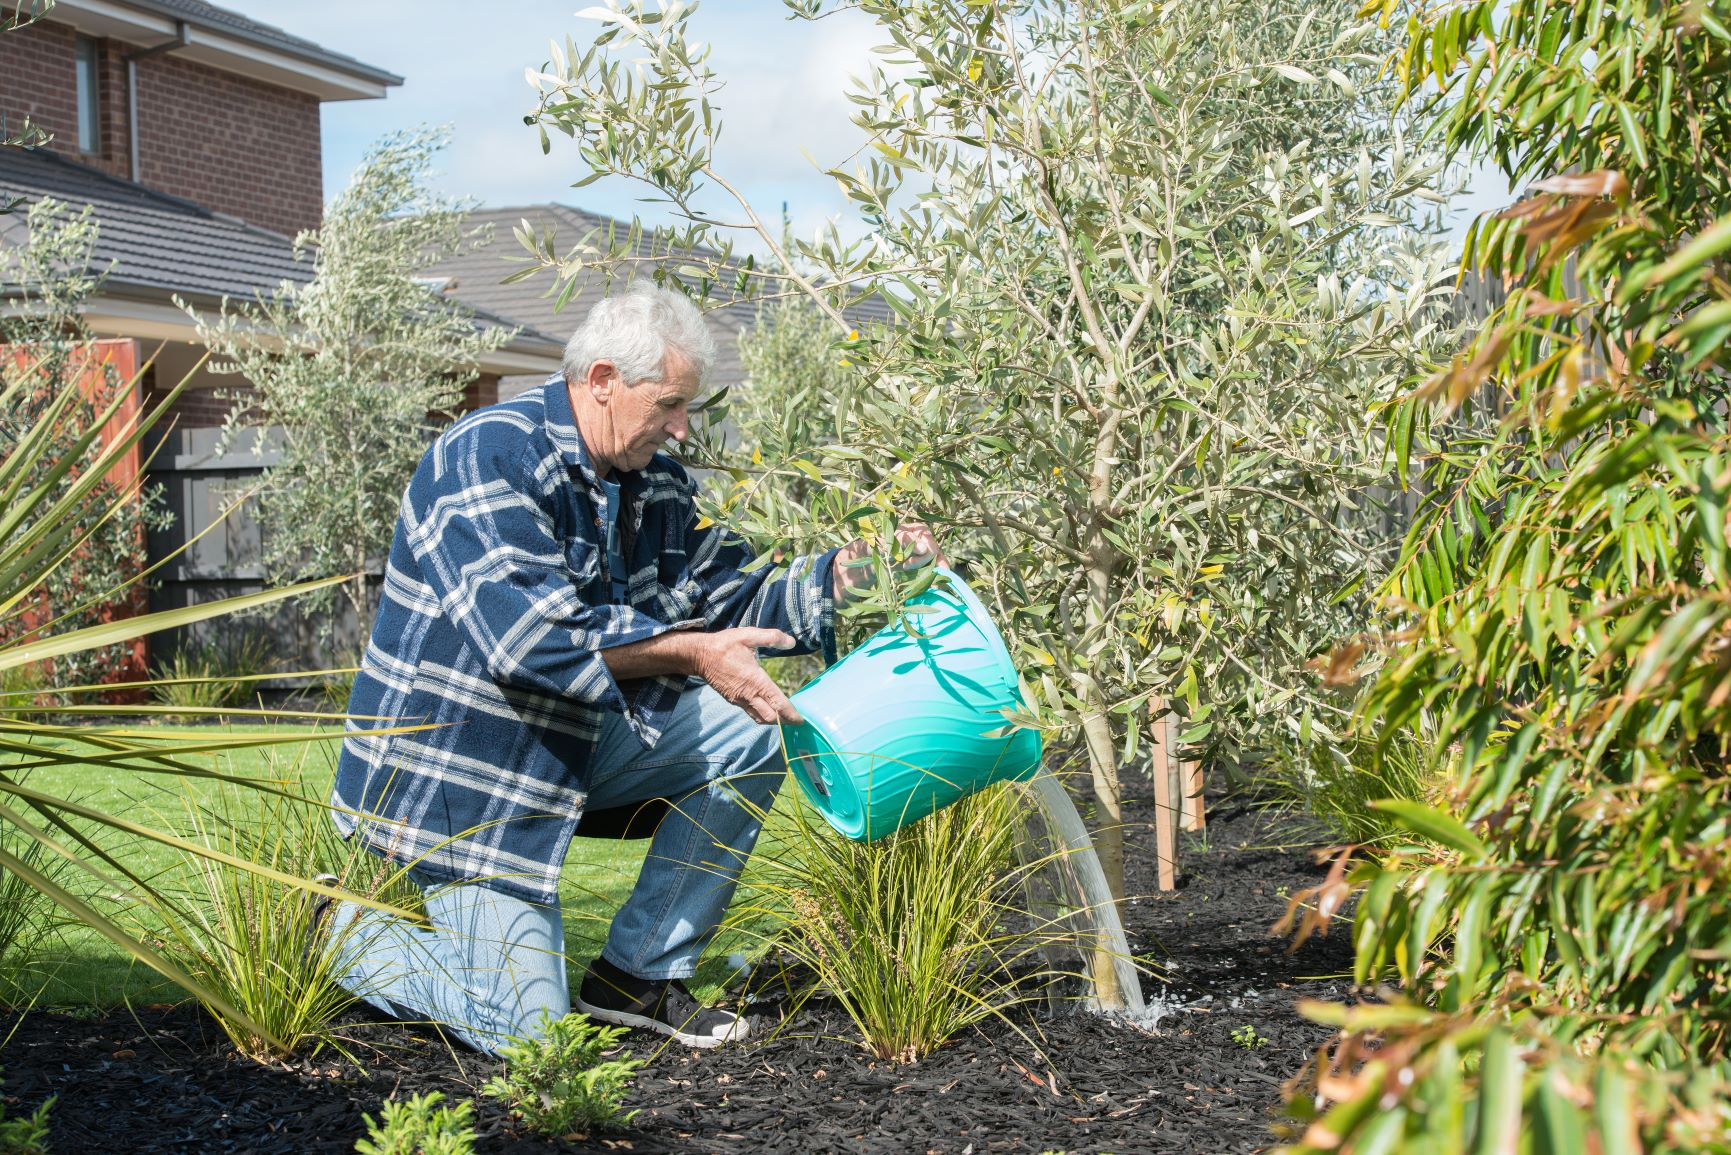 Man uses bucket to water small tree